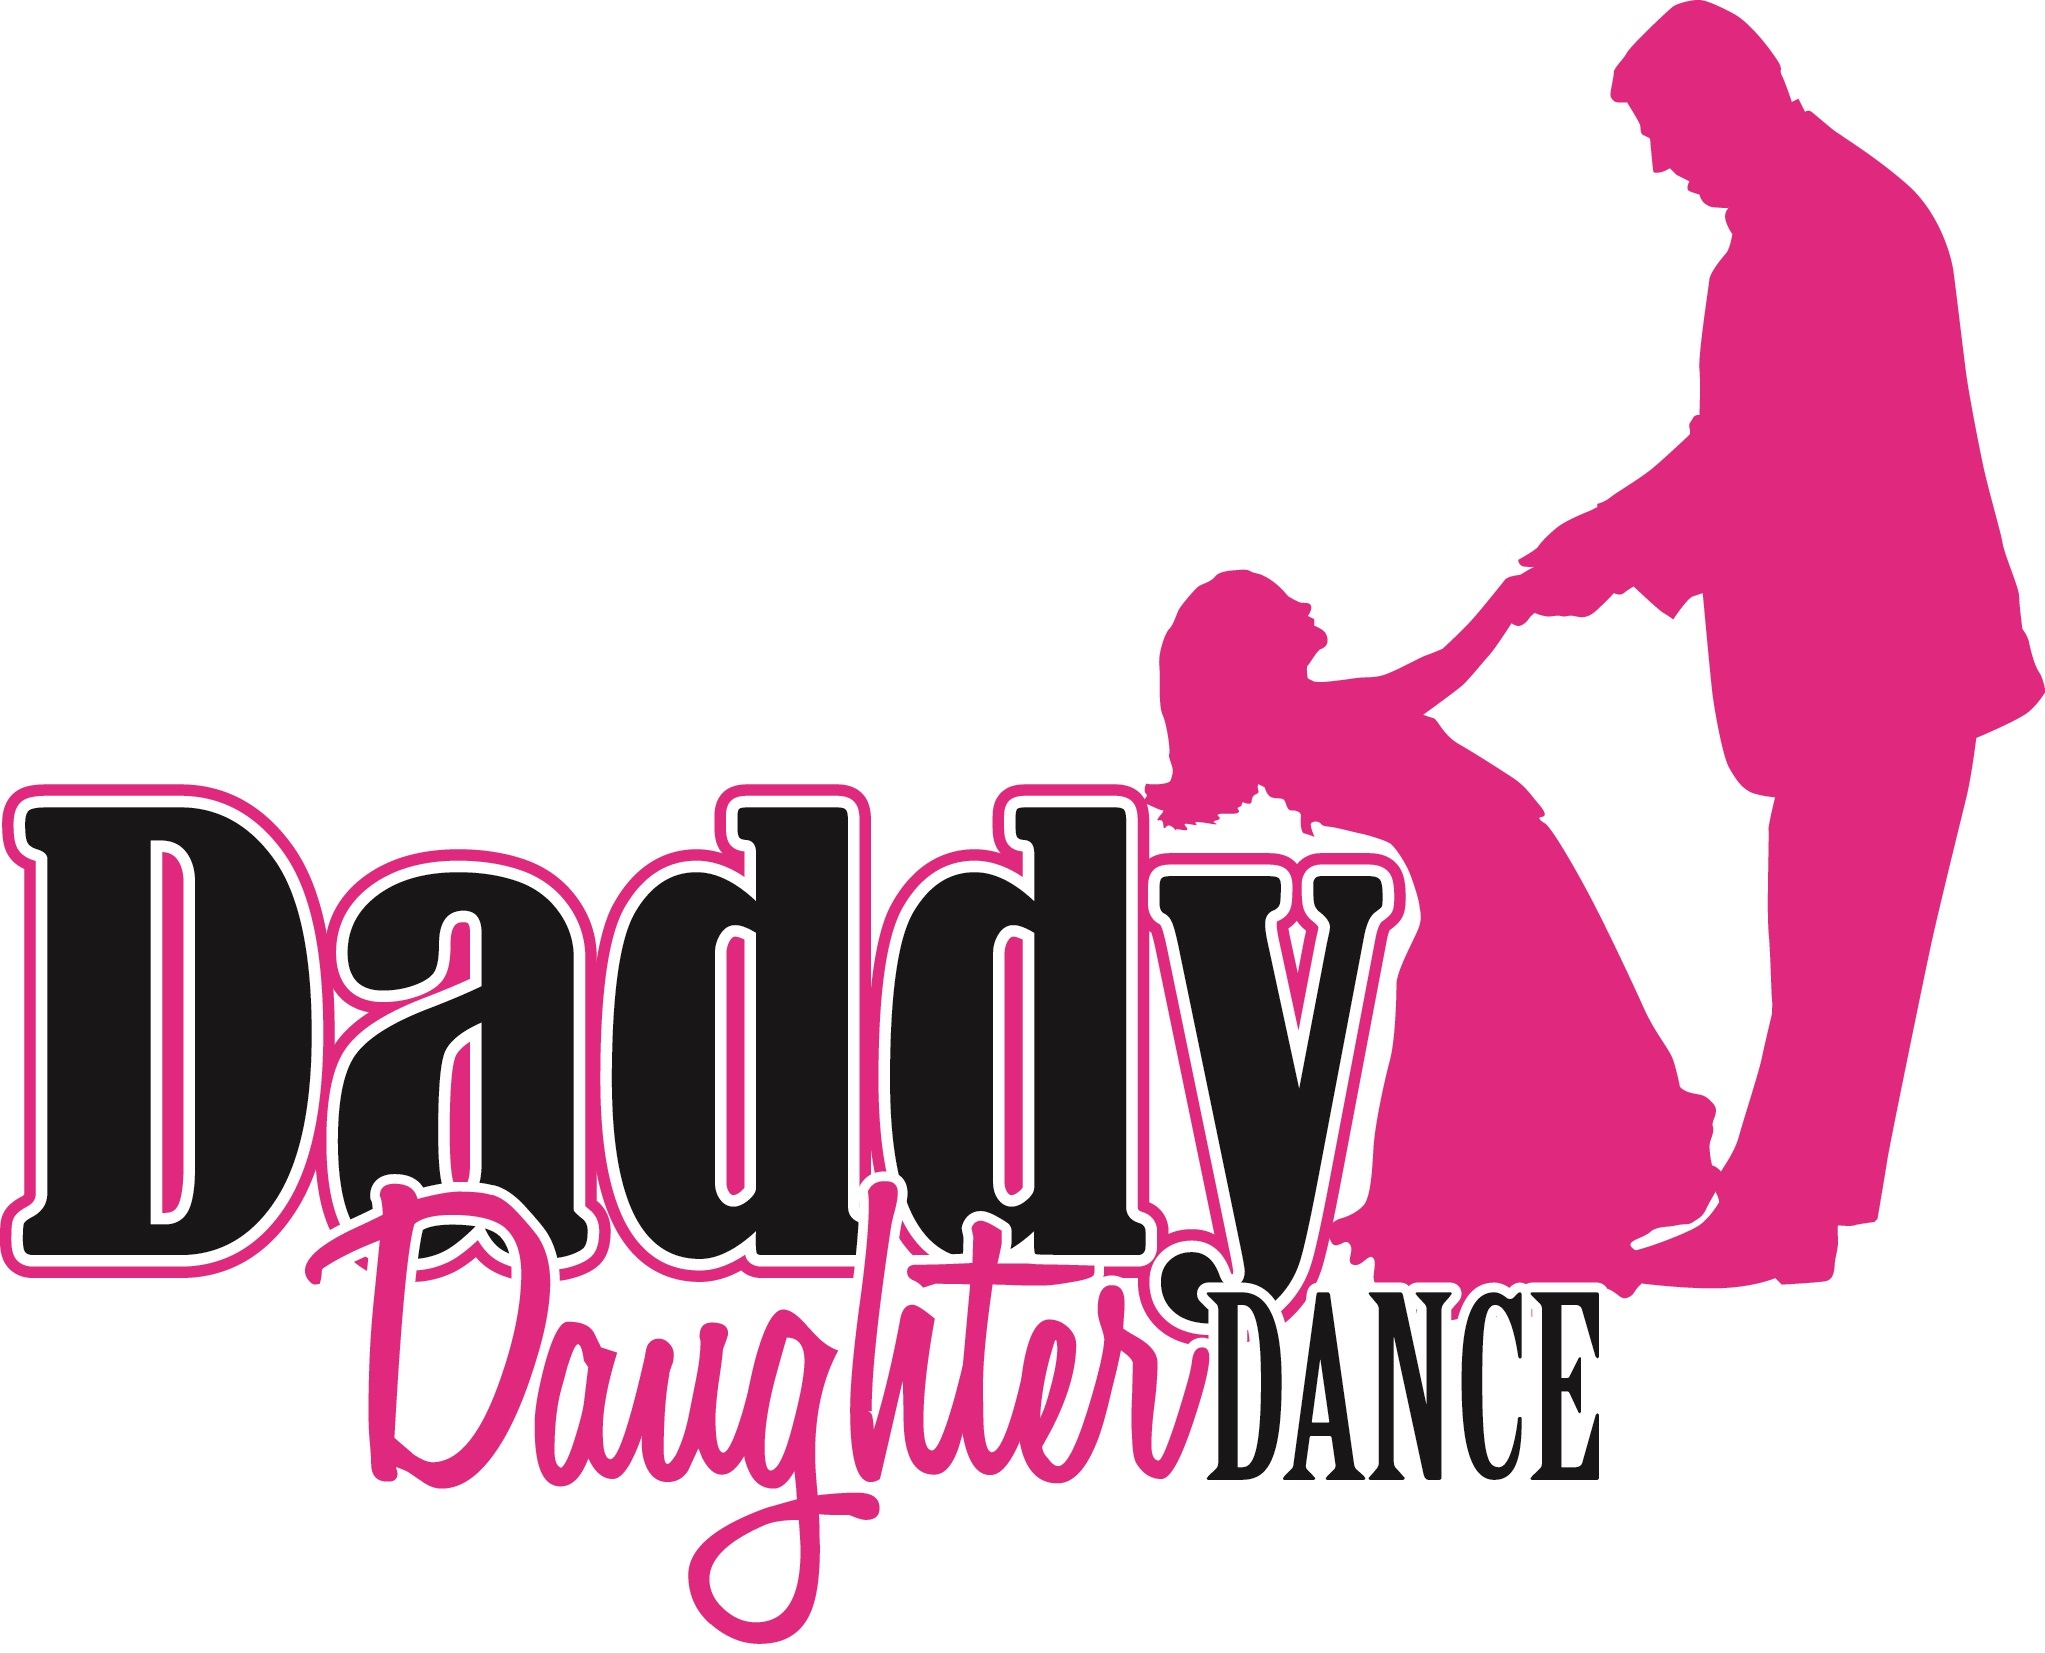 Rochester Community Schools - Daddy Daughter Dance |Father Daughter Dance Drawings